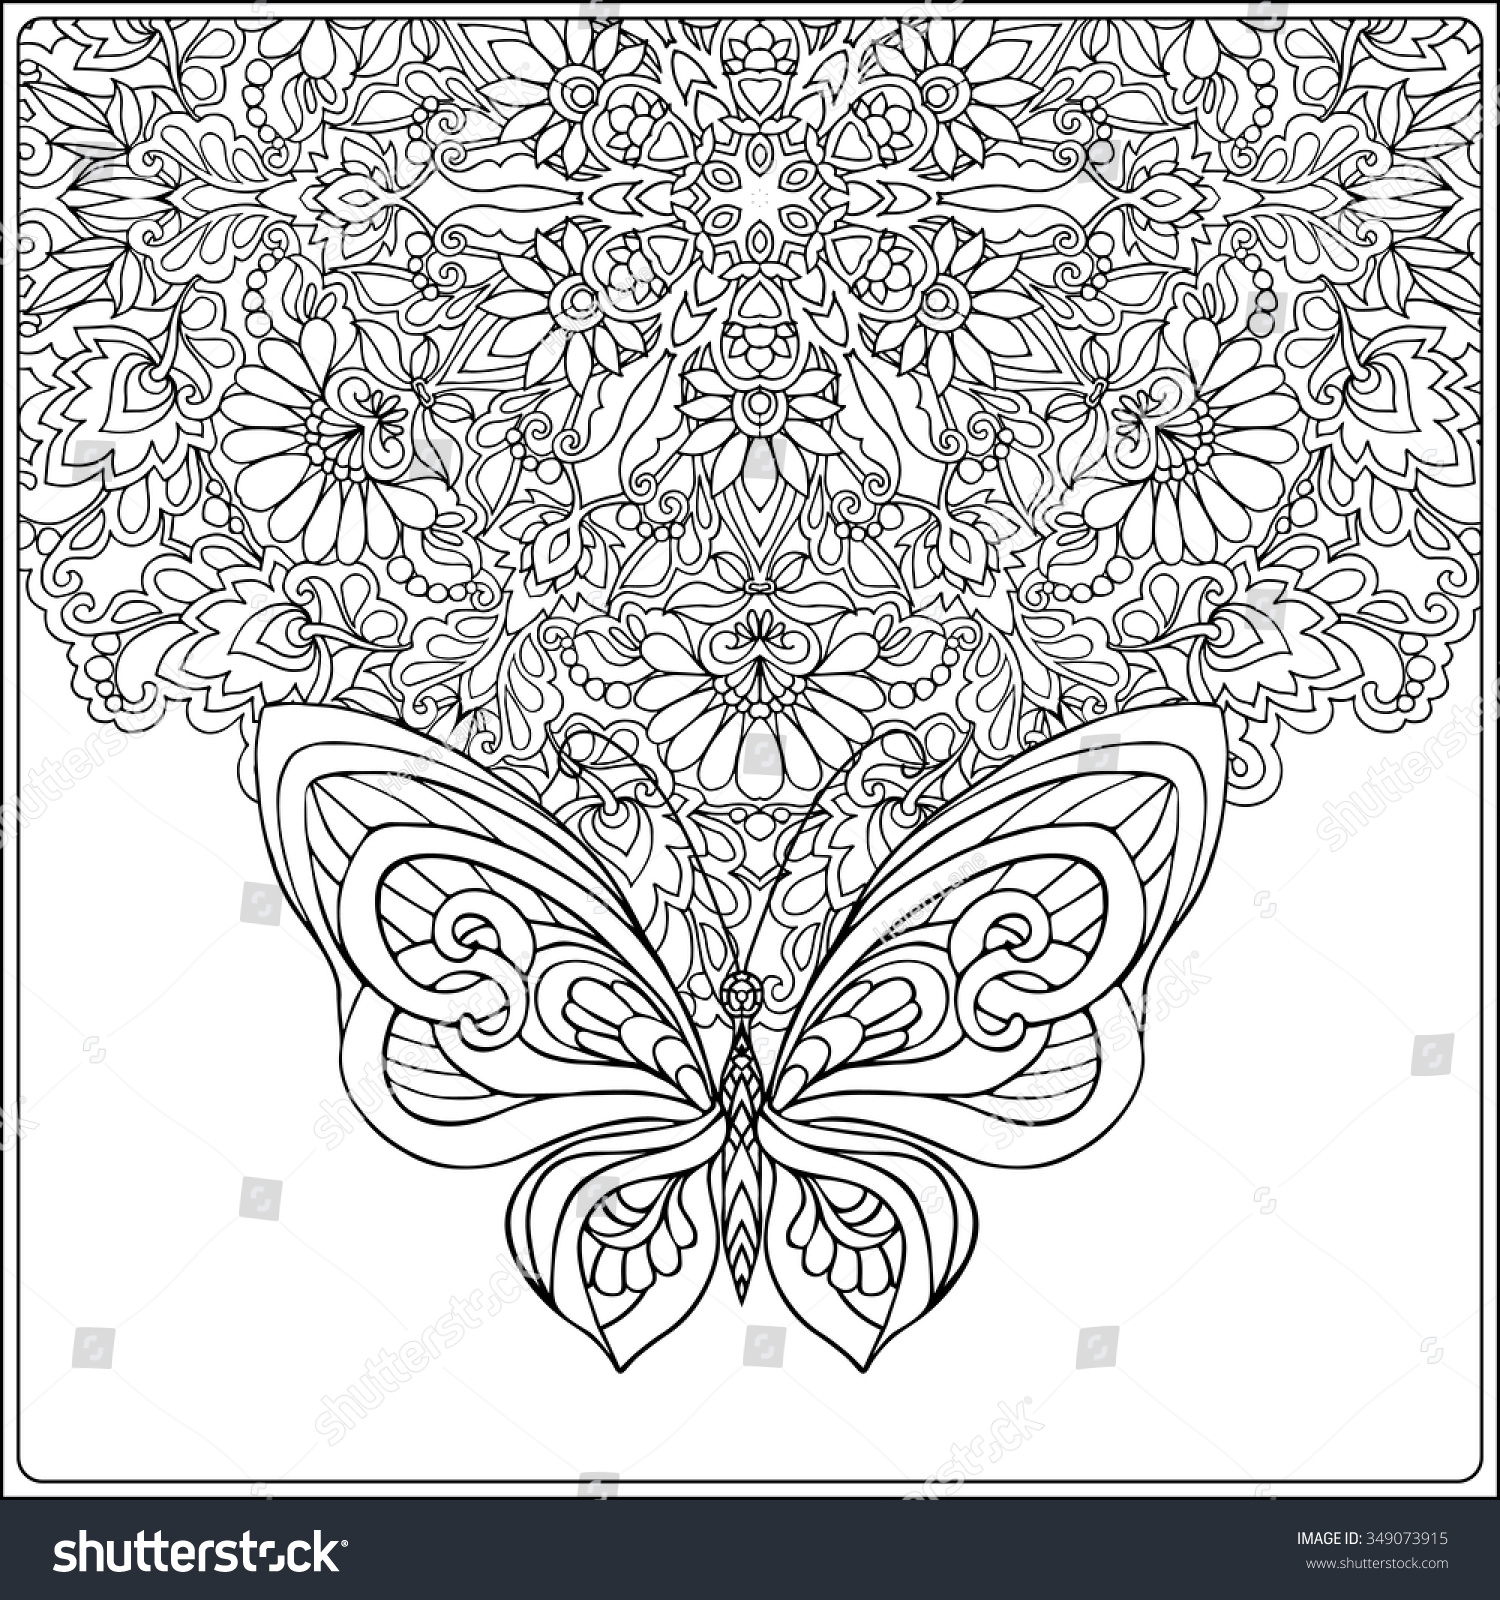 Bird Mandala Coloring Pages On Bird Images Free Download Coloring